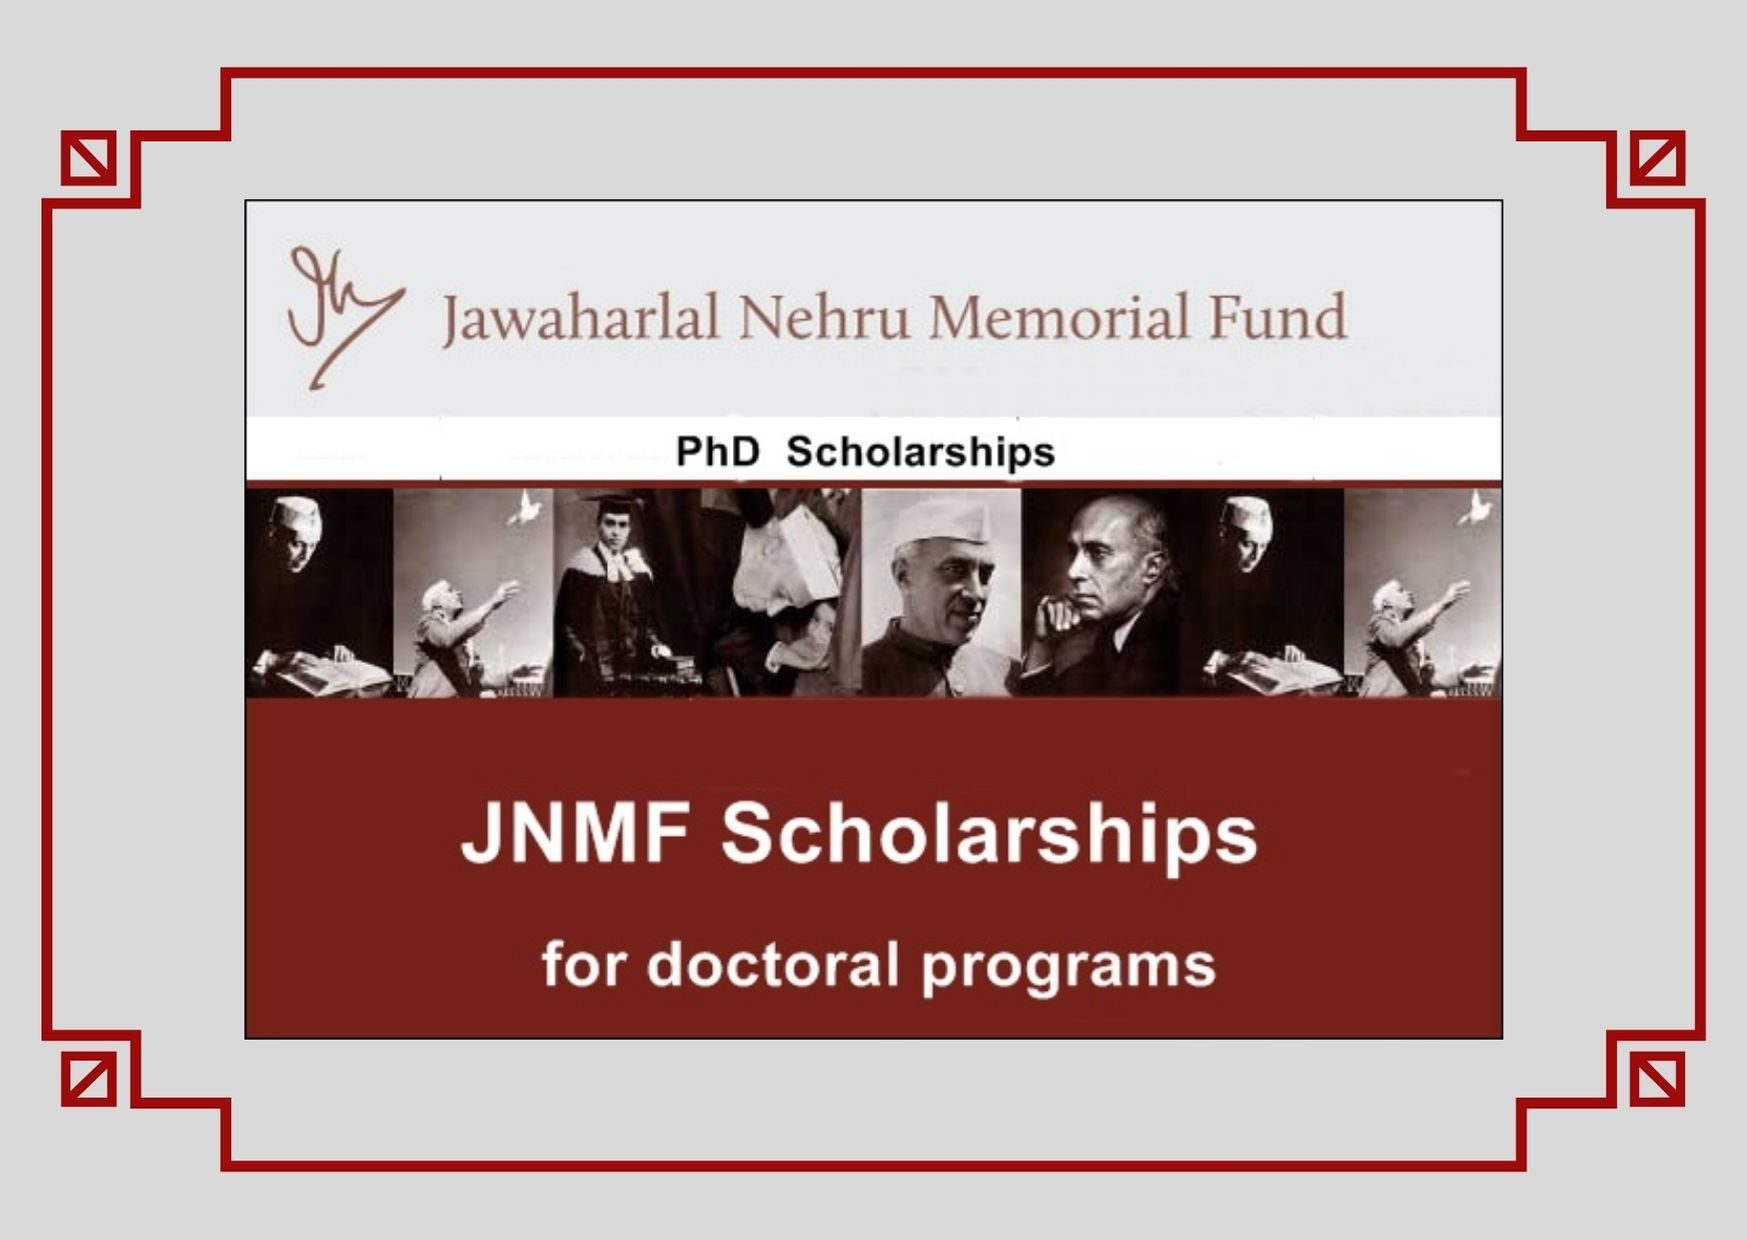 JNMF Scholarship 2021 Apply Eligibility Criteria jnmf.in